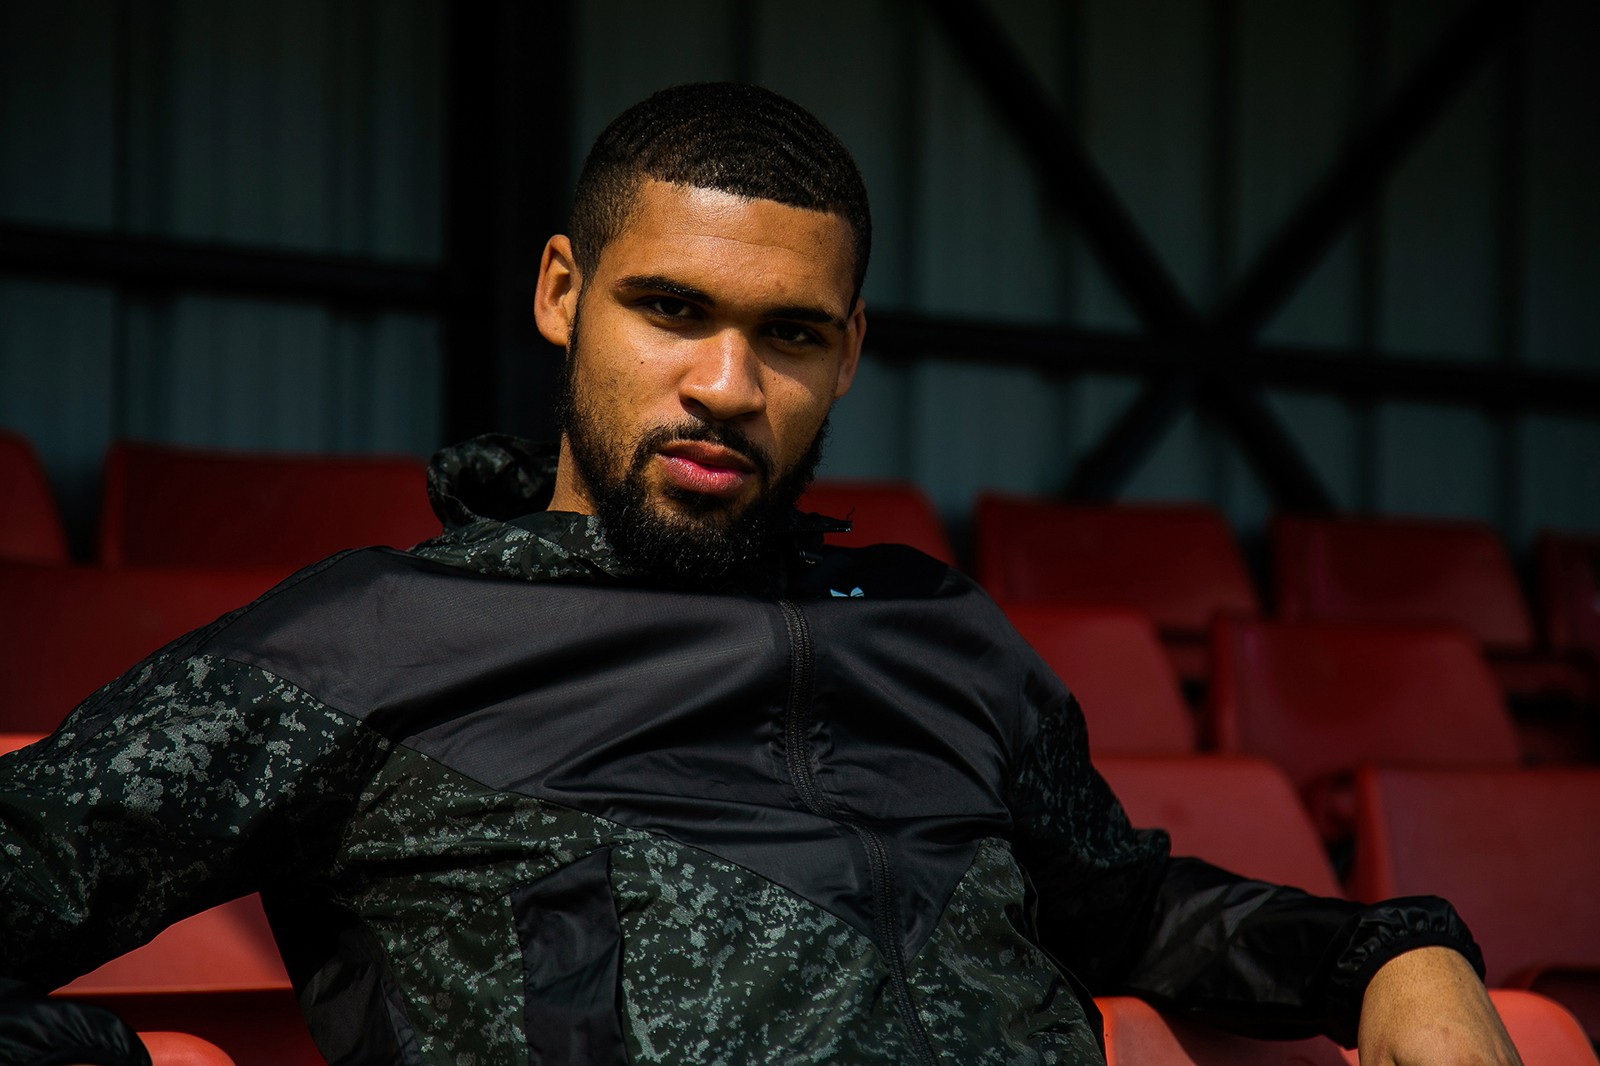 Ruben Loftus Cheek Interview Chelsea England Racism Not Playing Internet Heartthrob Social Media Pressure Attractive Good Looking Golden Generation Conversation